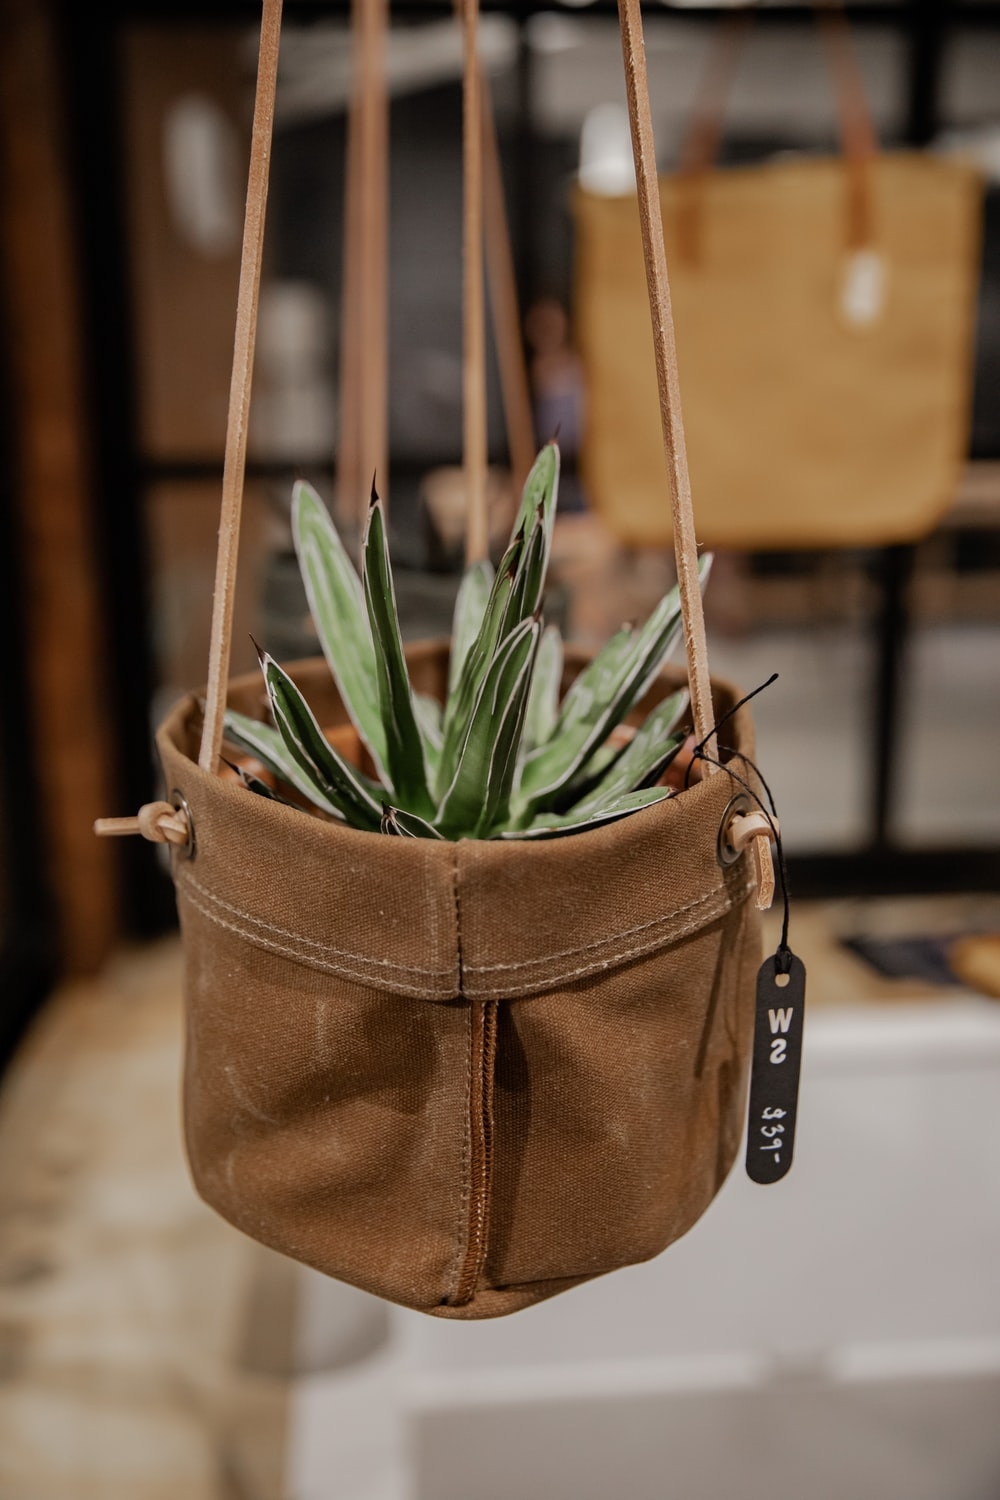 green plant on brown leather bag